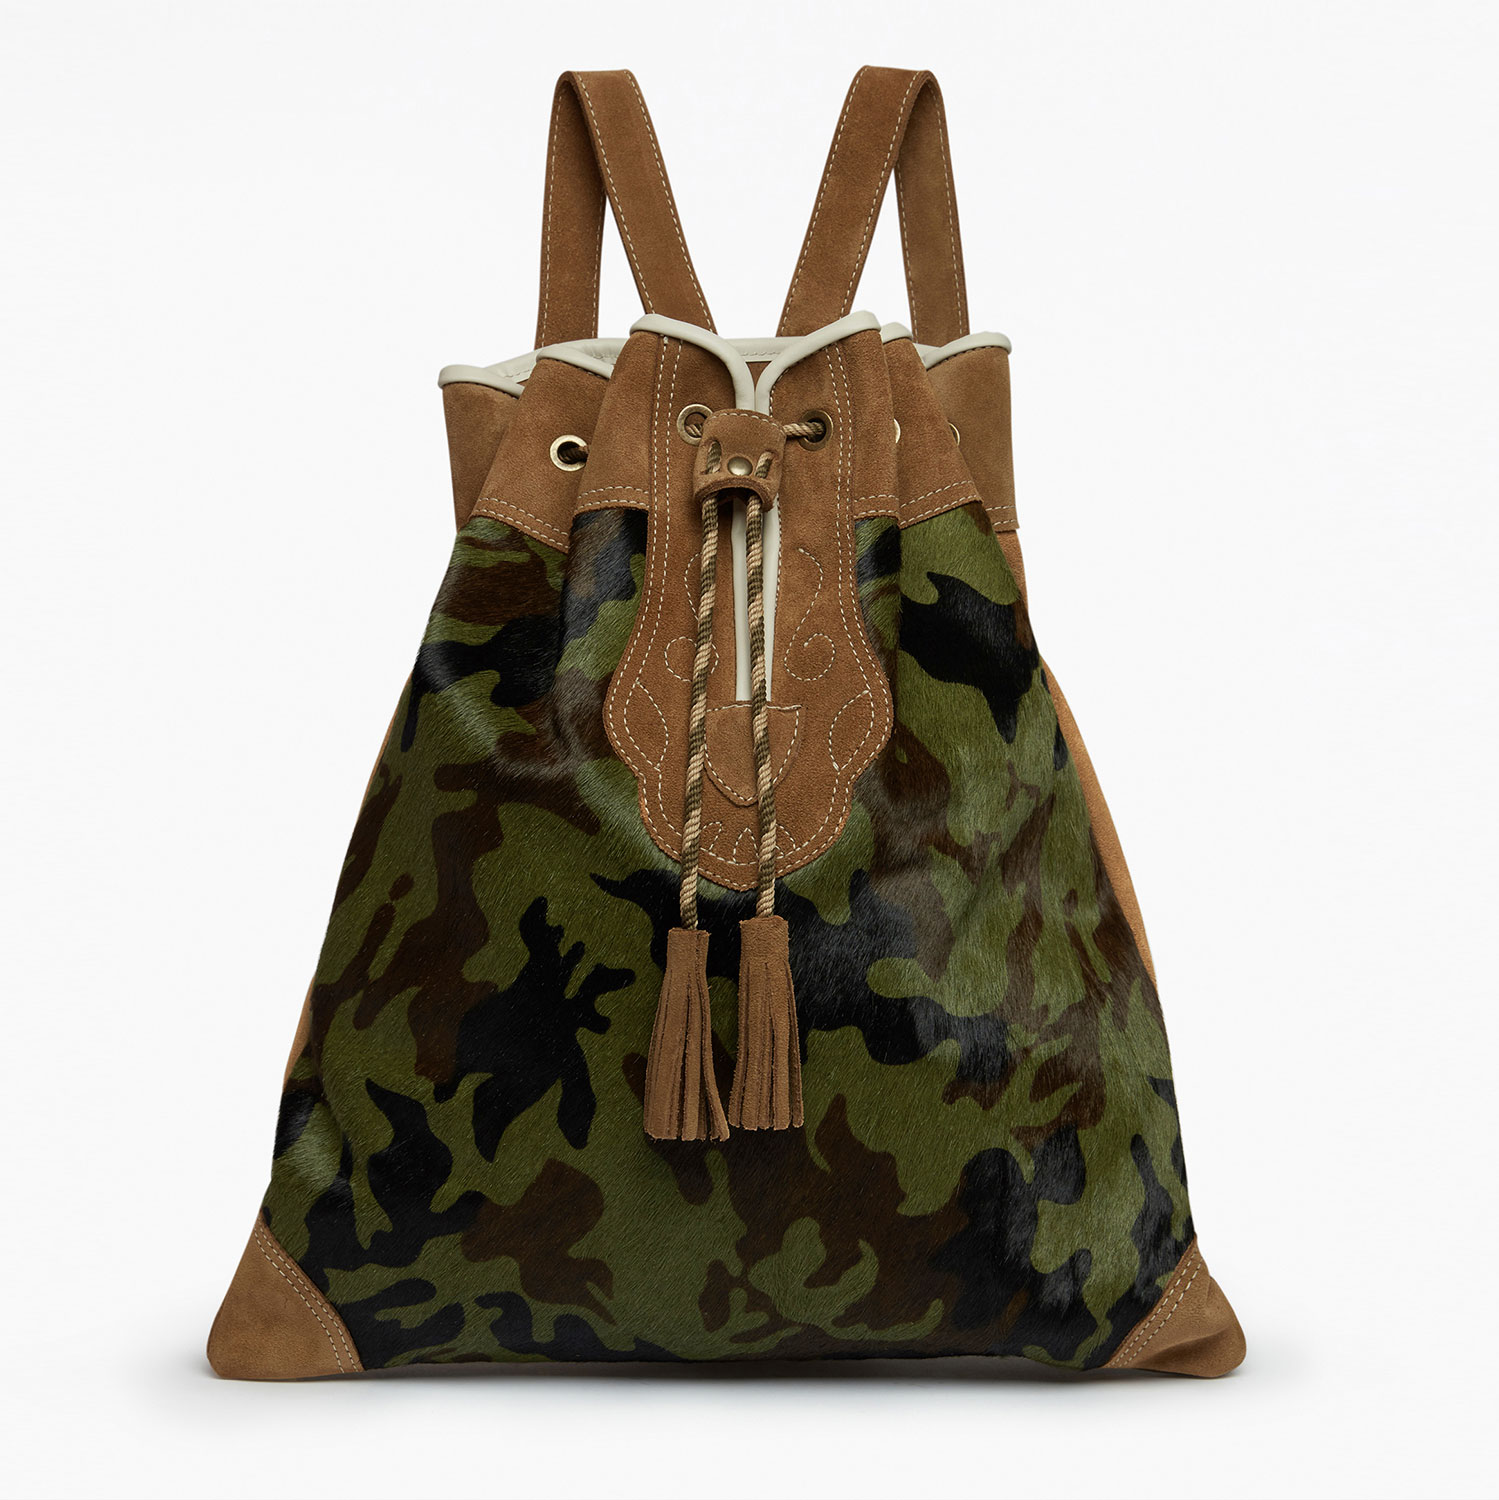 Camo pony rucksack by Penelope Chilvers